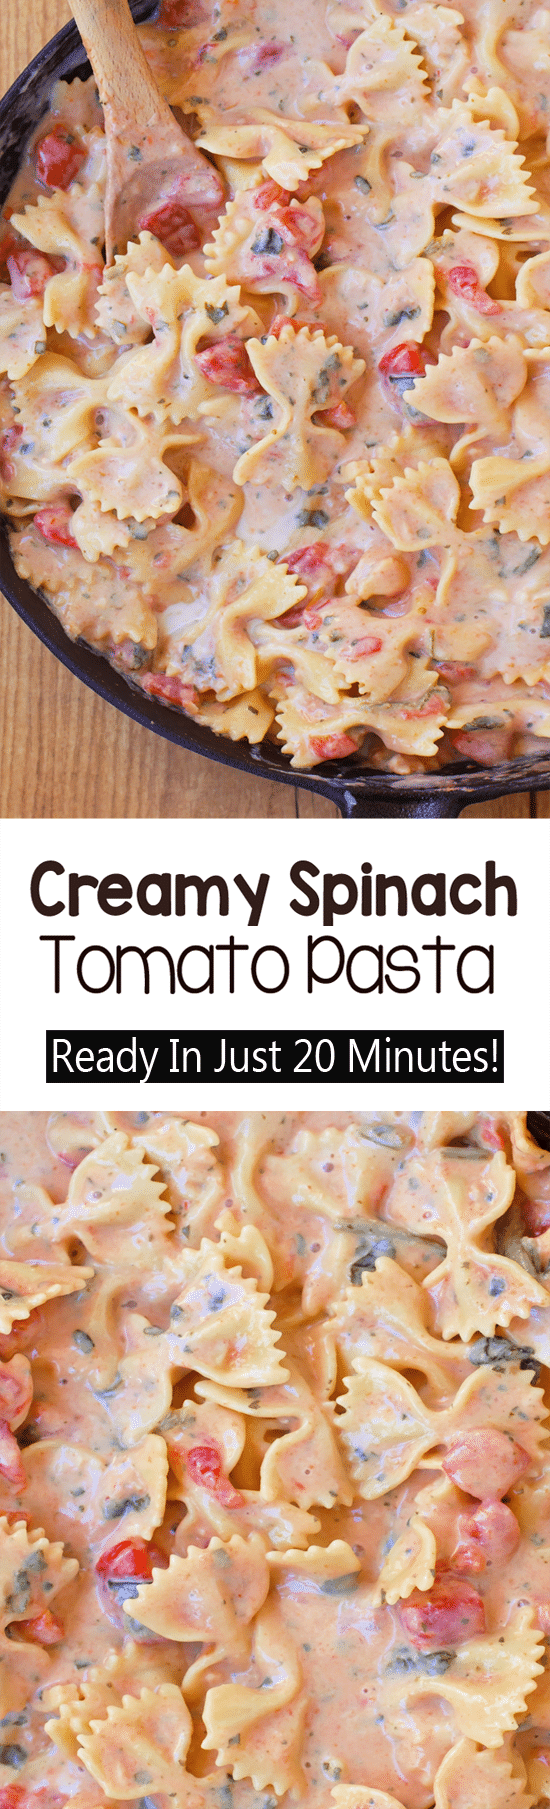 Super Creamy One Pot Spinach Tomato Pasta Recipe